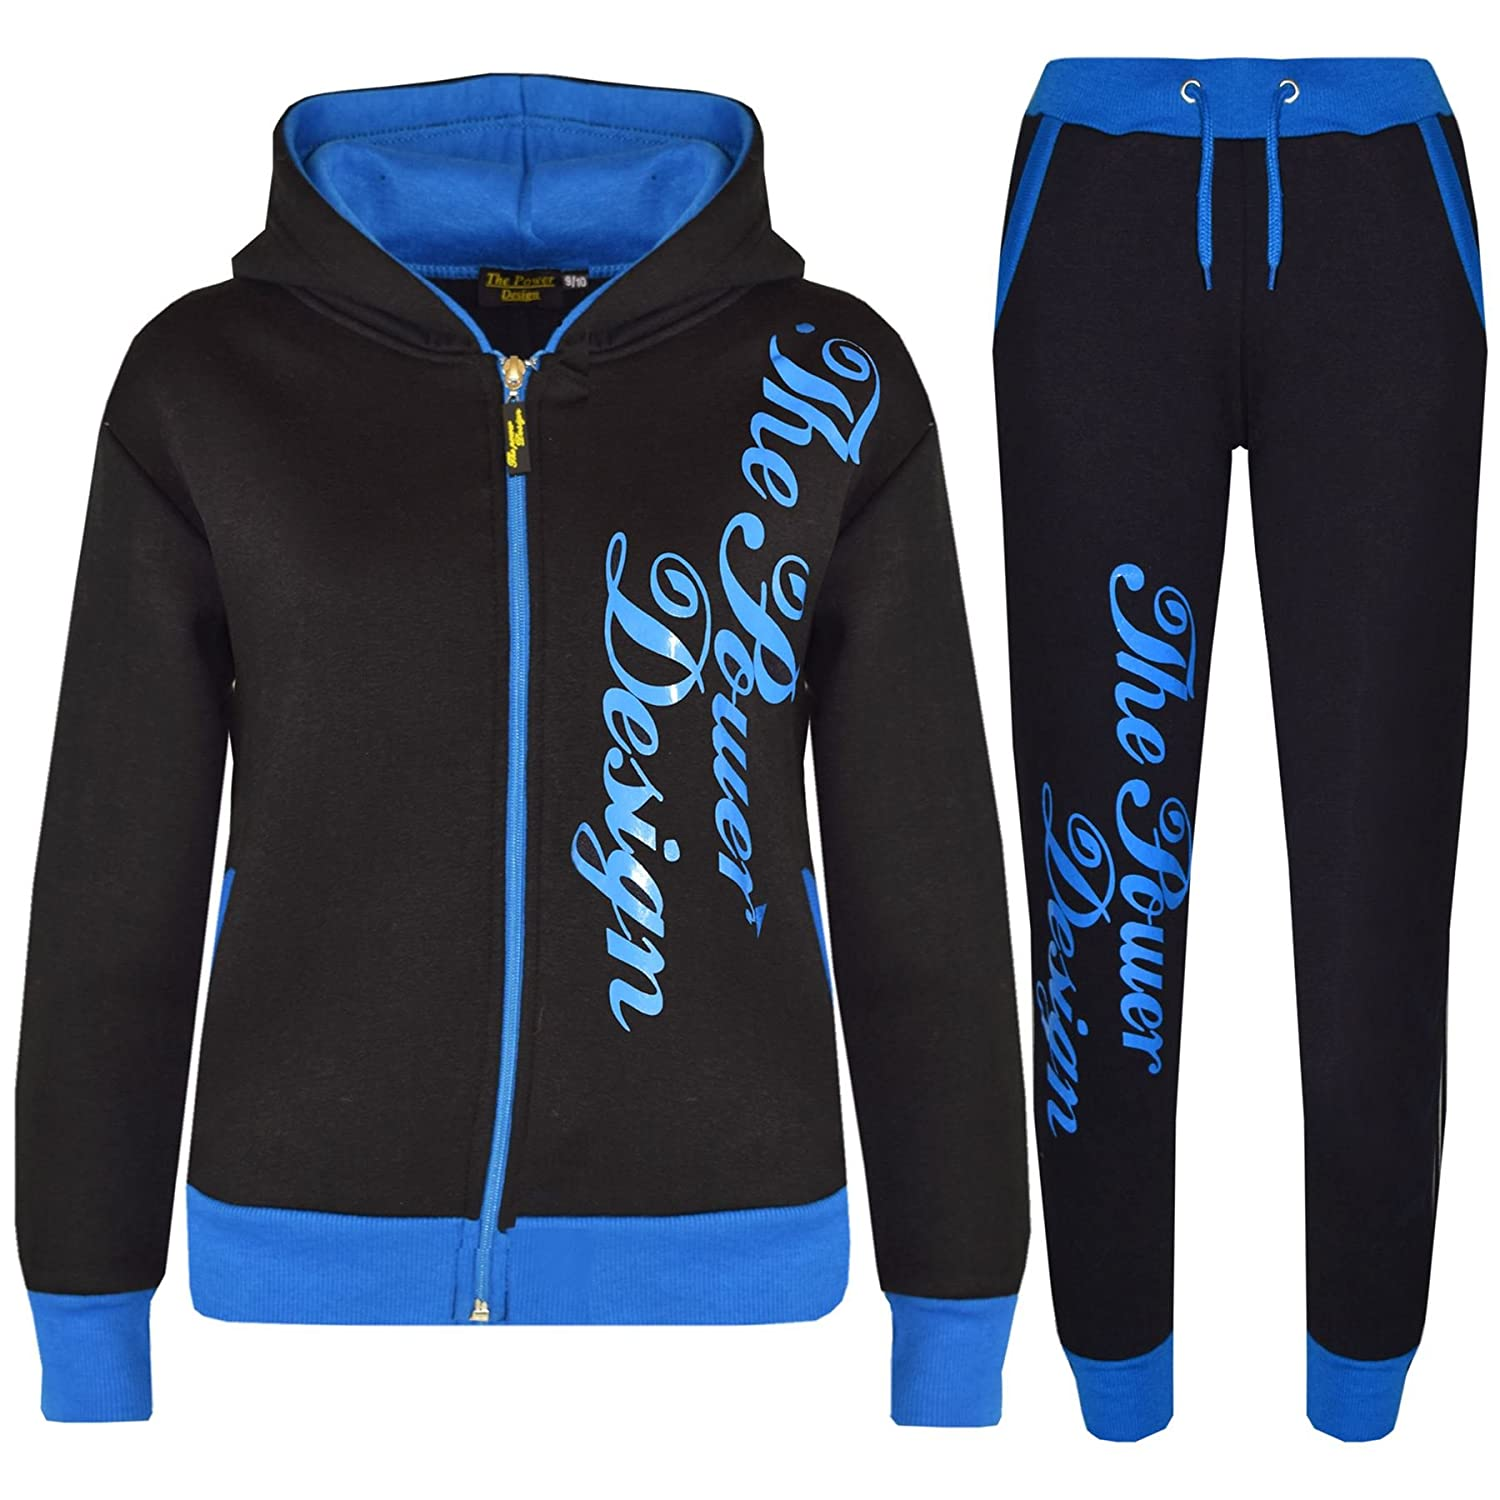 A2Z 4 Kids® Kids Tracksuit Designer's Girls Boys The Power Design Top & Bottom Jogging Suit